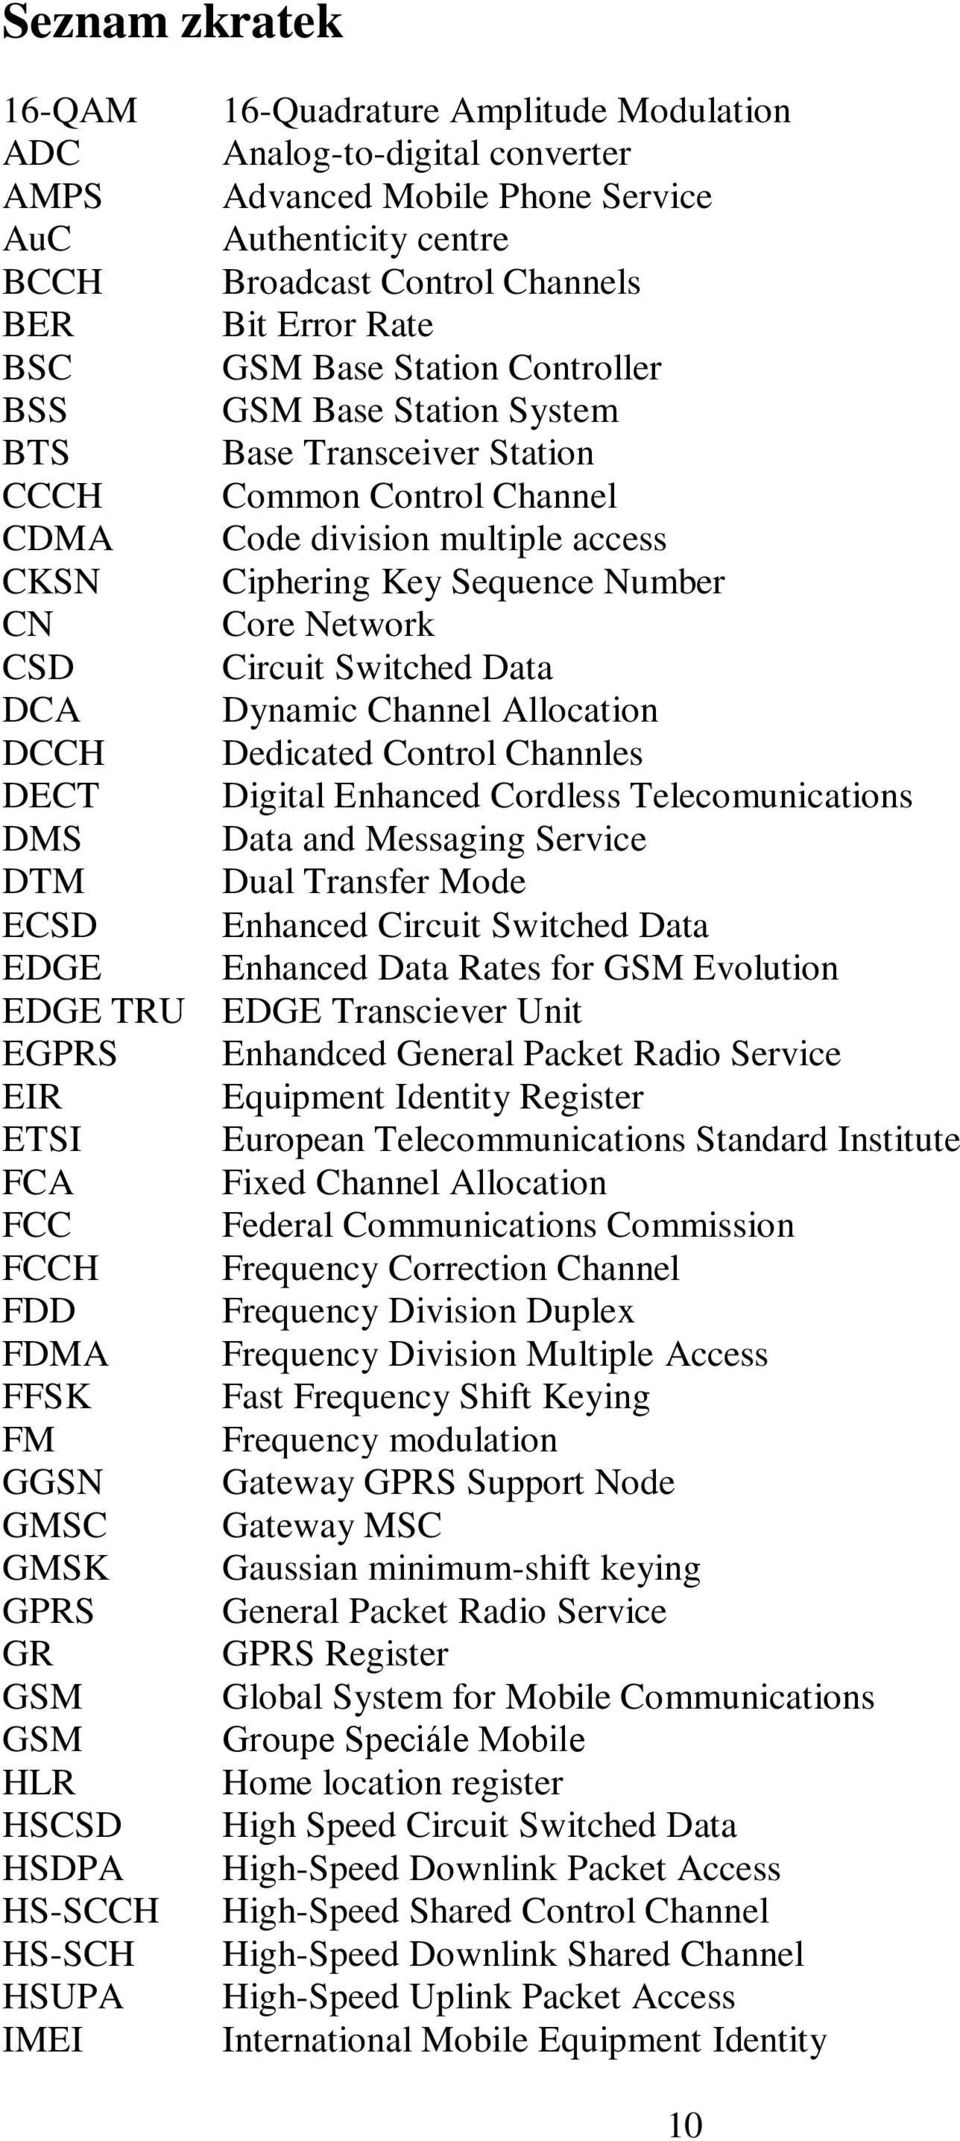 Network CSD Circuit Switched Data DCA Dynamic Channel Allocation DCCH Dedicated Control Channles DECT Digital Enhanced Cordless Telecomunications DMS Data and Messaging Service DTM Dual Transfer Mode